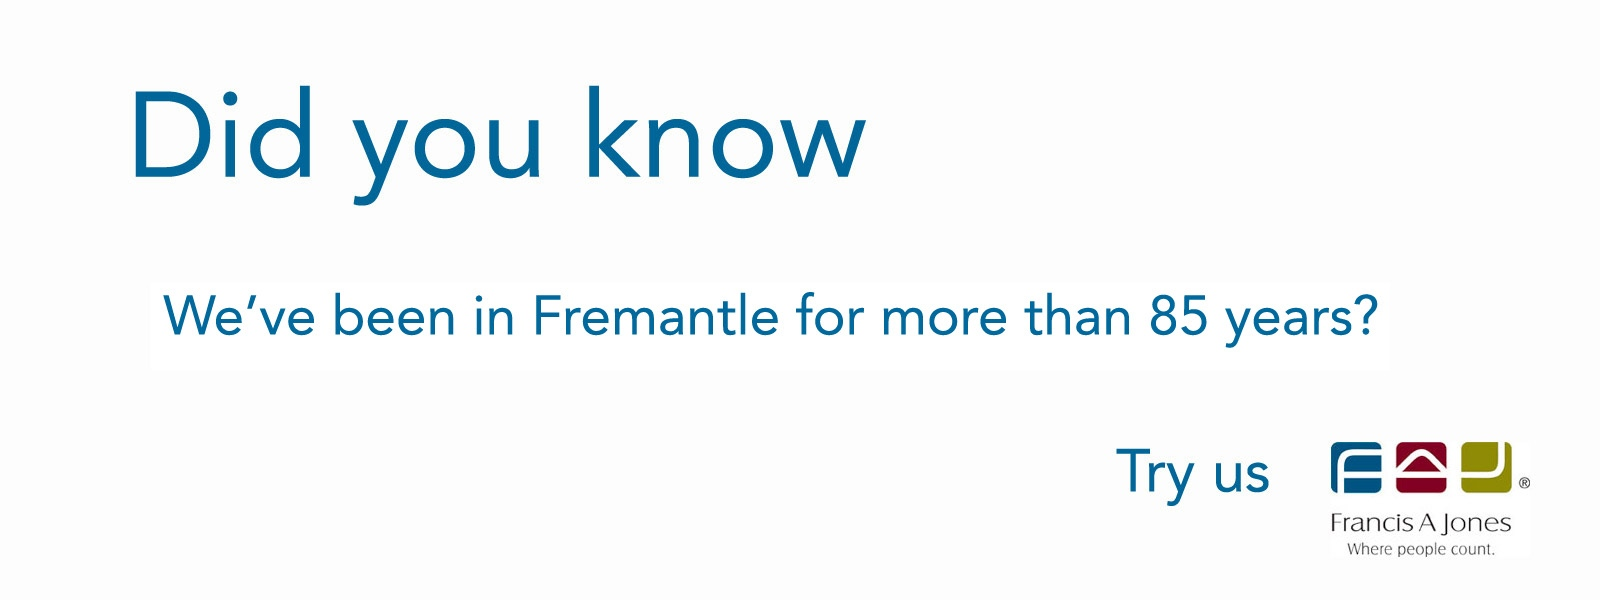 DYK-fremantle85years